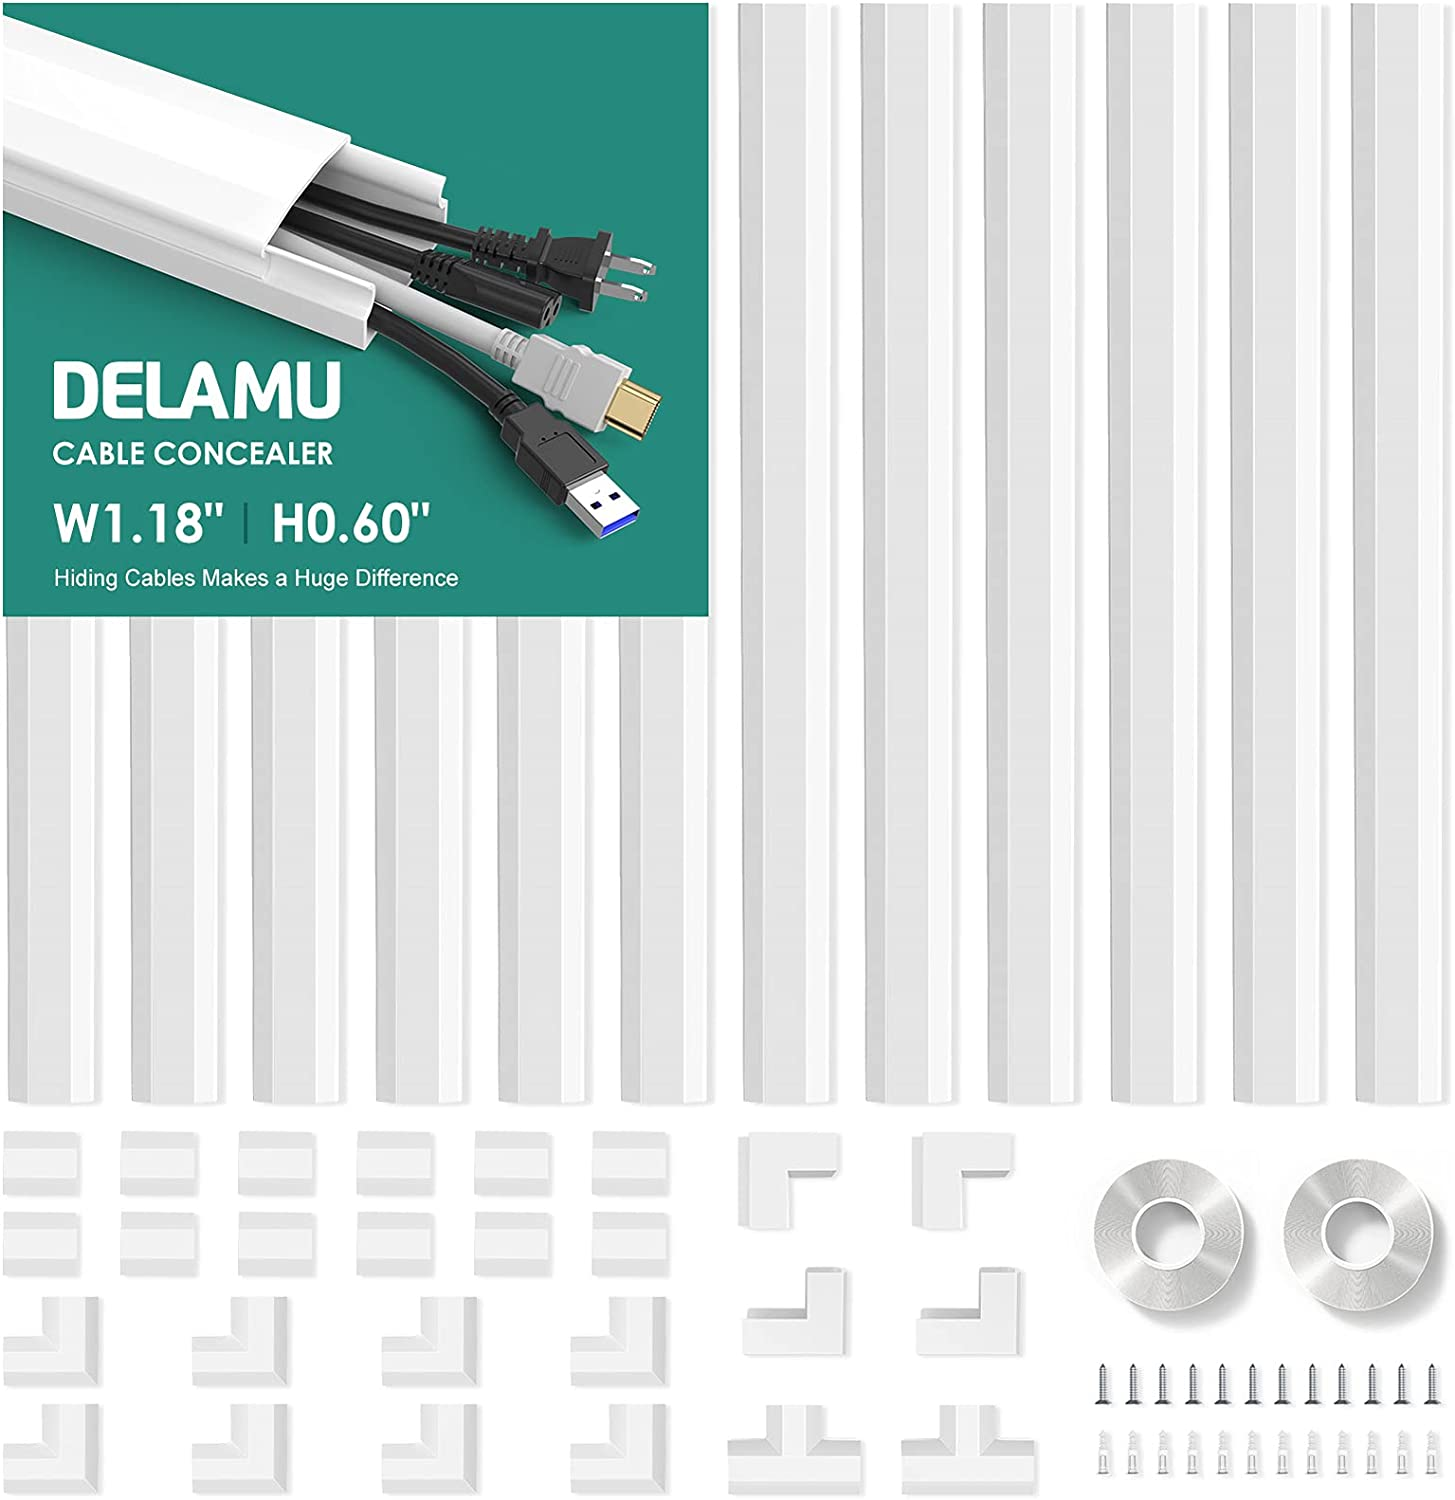 Cord Cover, Delamu 189in Cable Concealer, Paintable Cord Hider Wall, Wire Cover for Cords, Cable Raceway Kit for Office & Home, 12×L15.7in W1.18in H0.6in, White